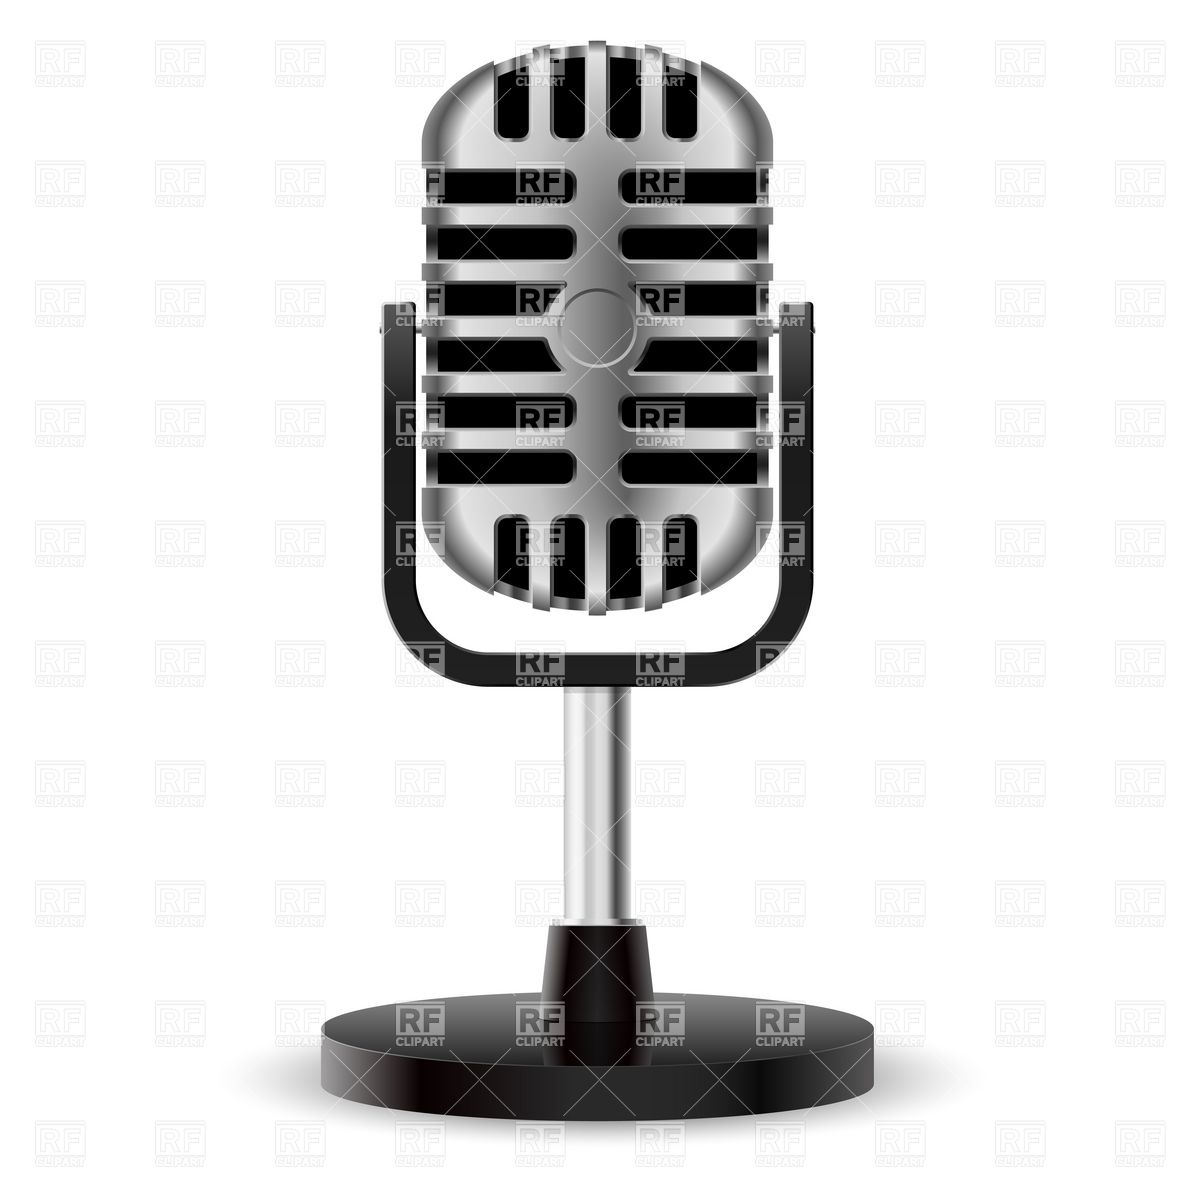 50s microphone clipart vector stock Microphone clipart studio microphone - 69 transparent clip arts ... vector stock